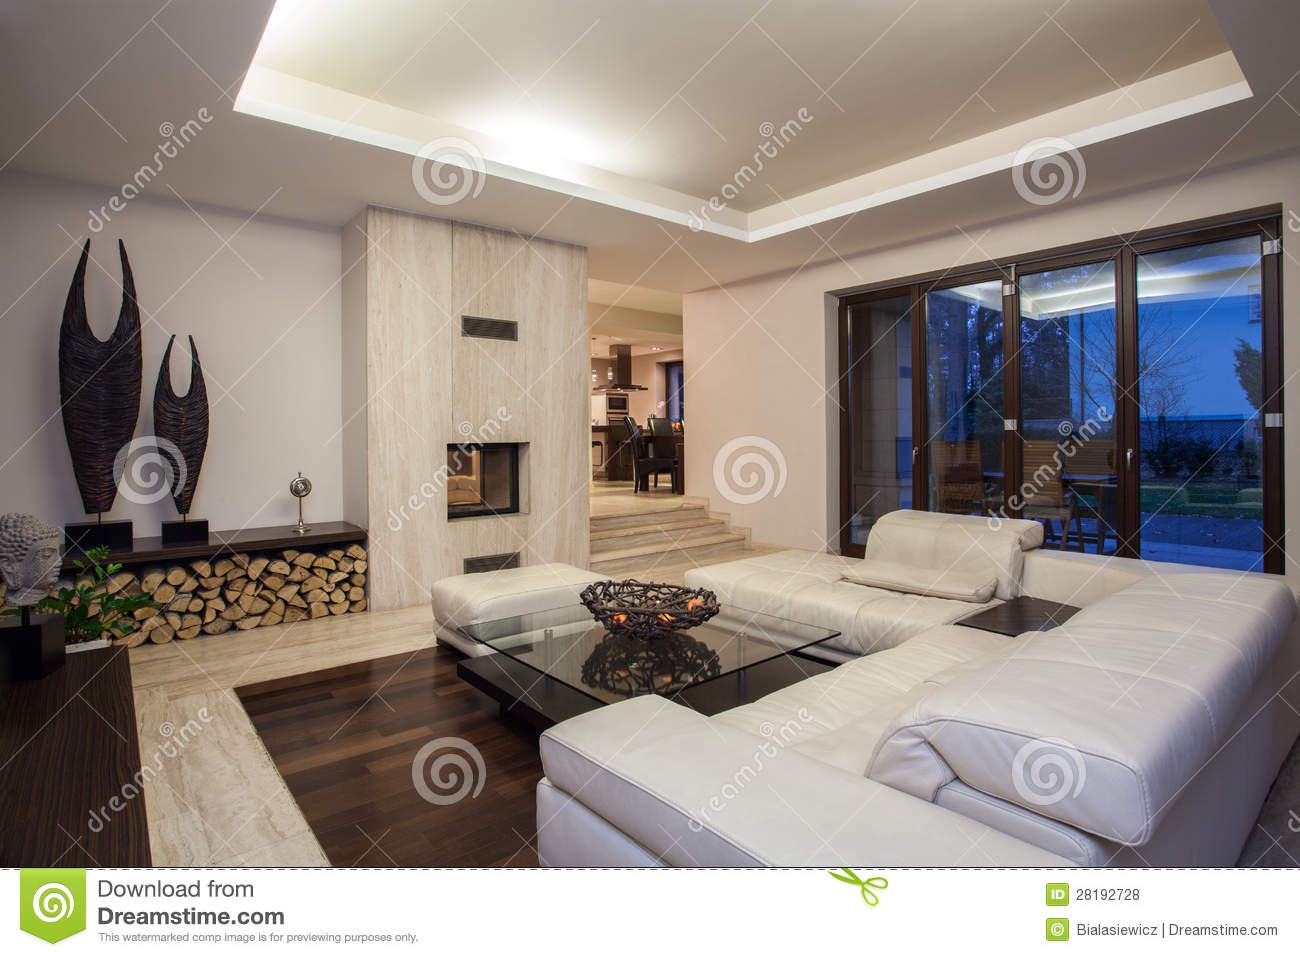 maison de travertin salon luxueux photo stock image 28192728